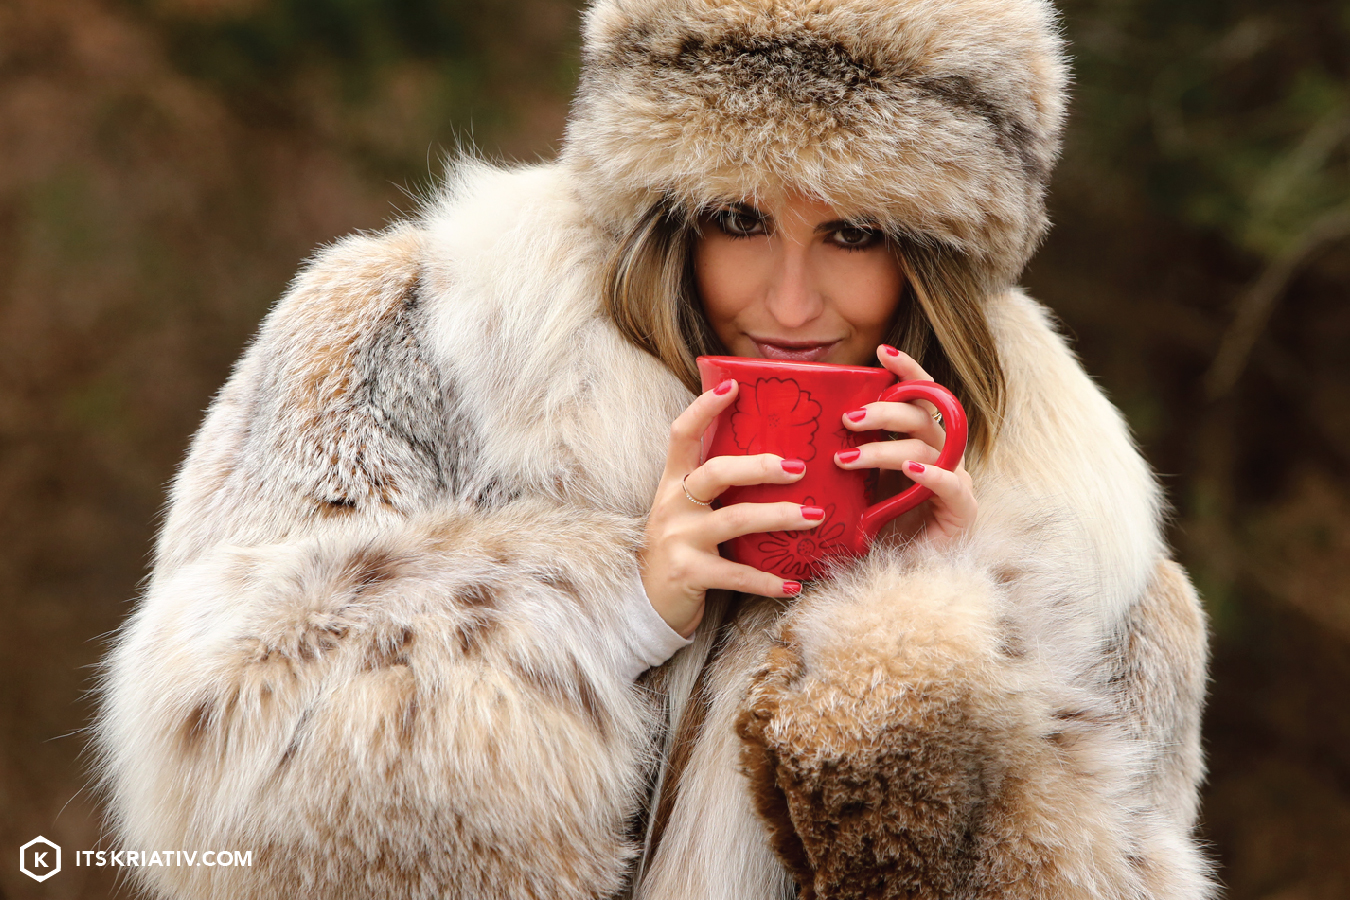 Its-Kriativ-Food-Rum-Peppermint-Hot-Chocolate-Fur-Captain-Morgan.jpg